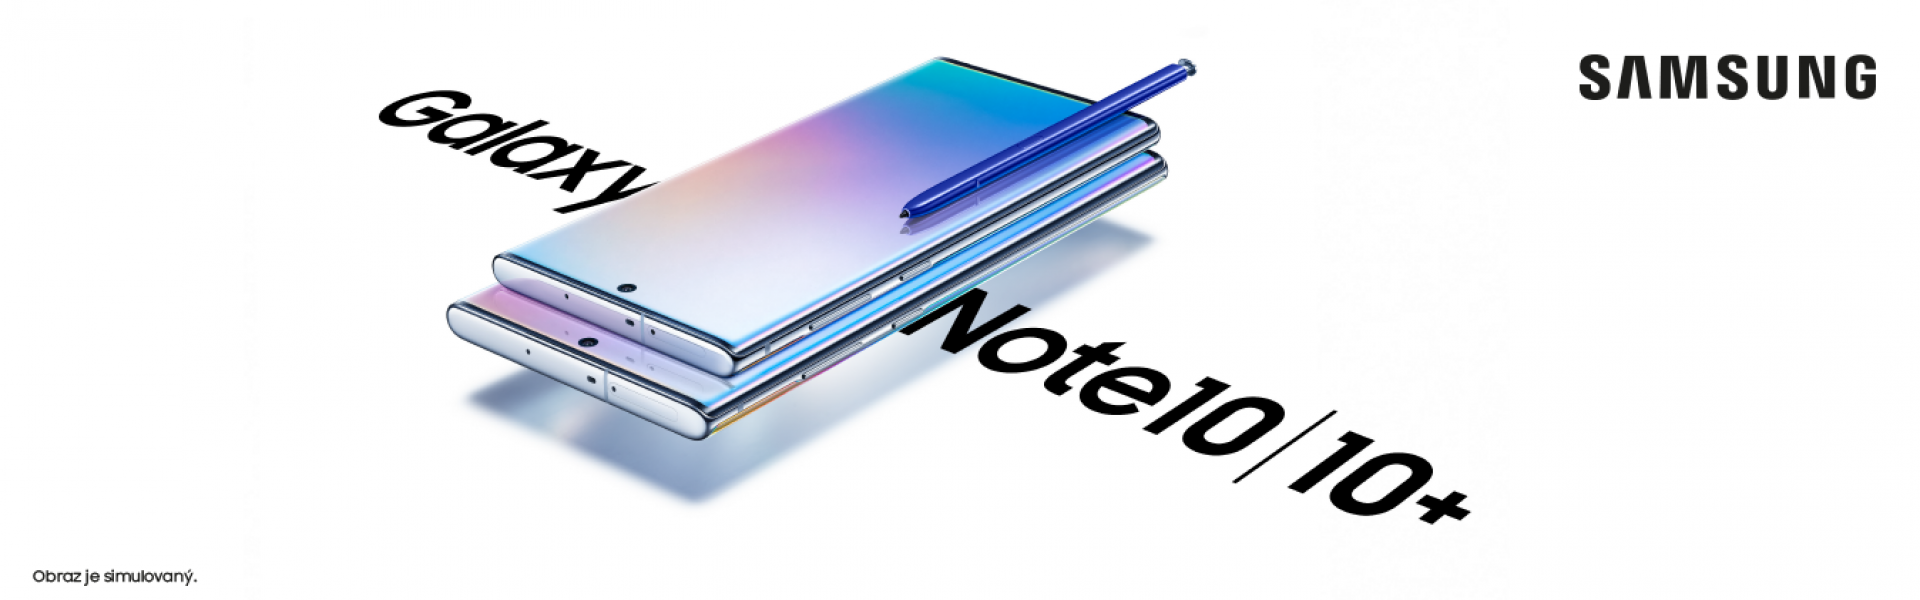 Samsung Galxy Note 10 - Duntel Web Banner Note 10 - Duntel